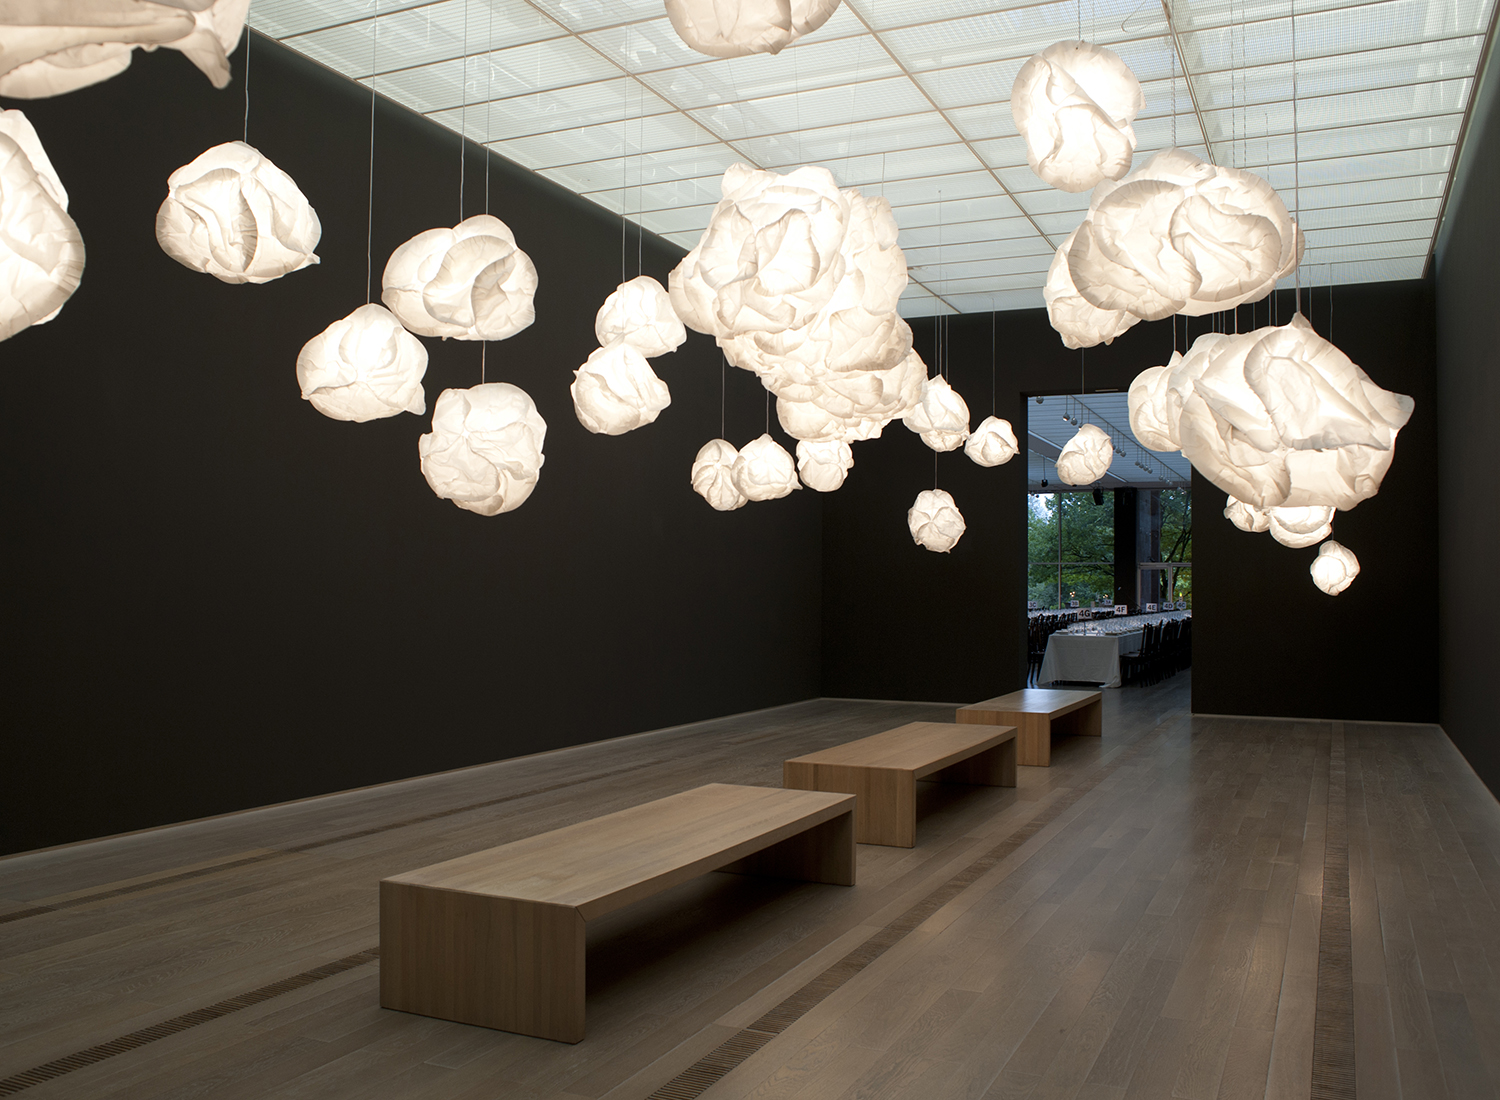 Creative support for event at Fodation Beyeler, Riehen - CH